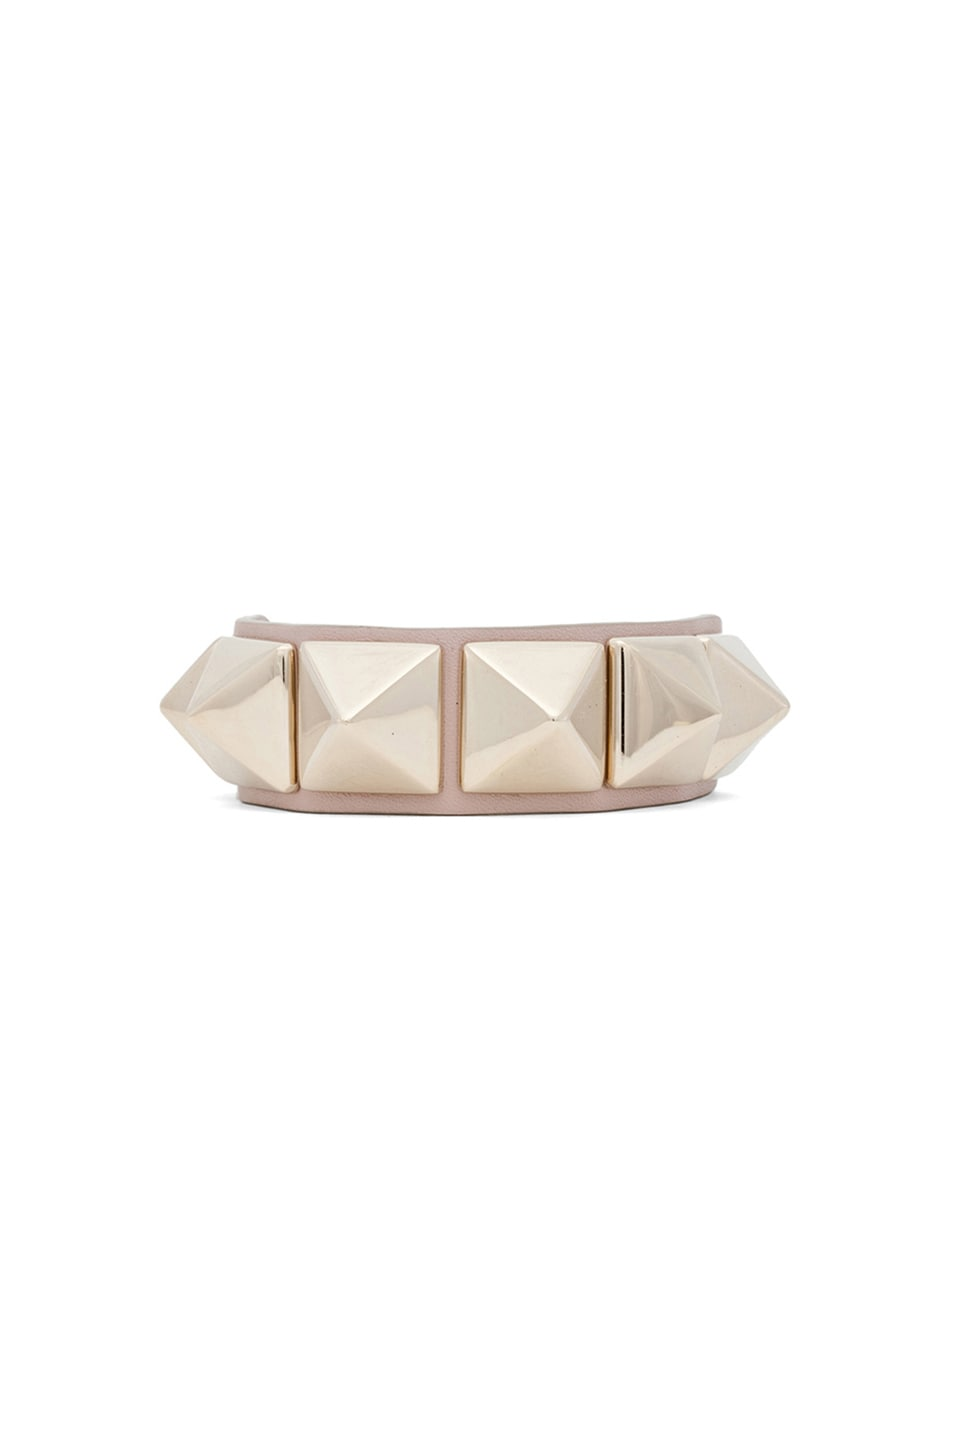 Image 1 of Valentino Medium Rockstud Va Va Voom Leather Bracelet in Poudre